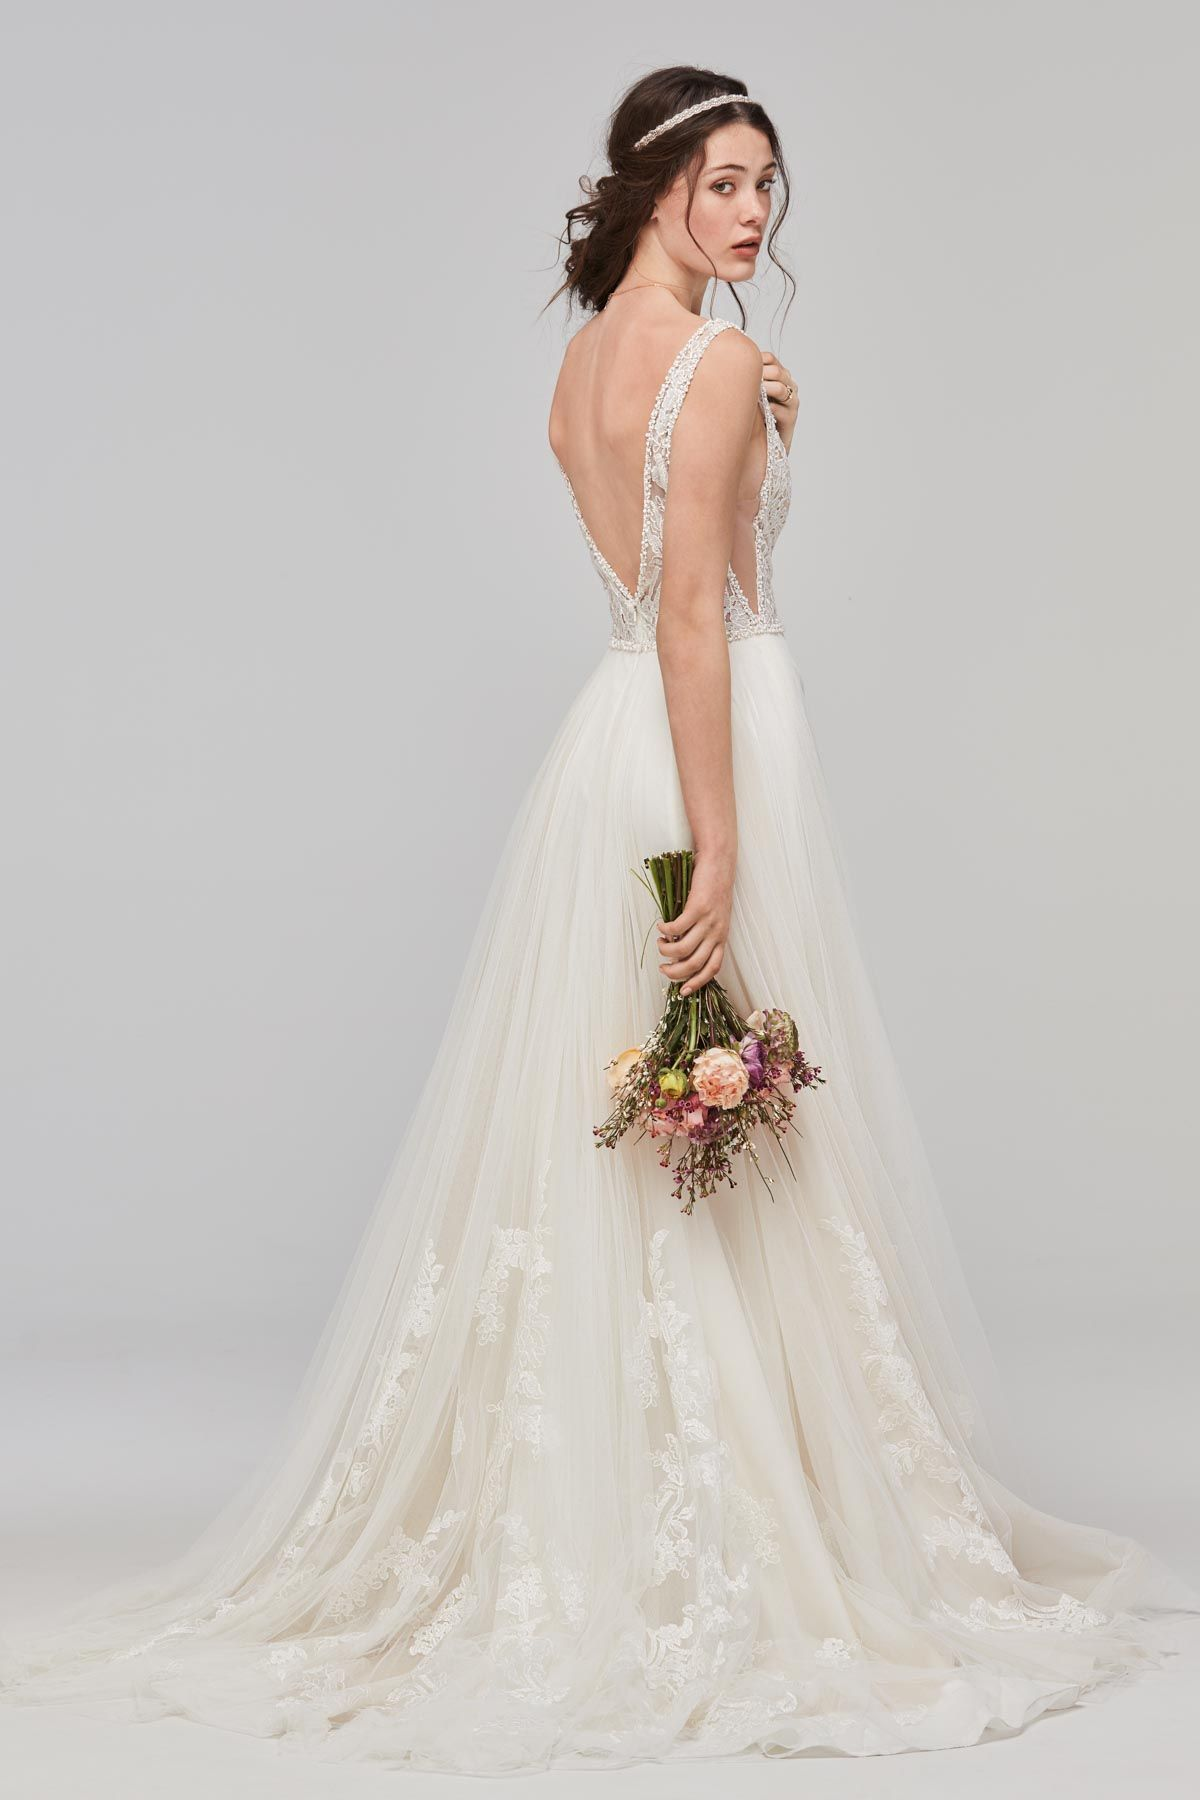 Bridal wedding dresses  Philomena  Willowby  Watters  Available at Luluus Bridal Boutique